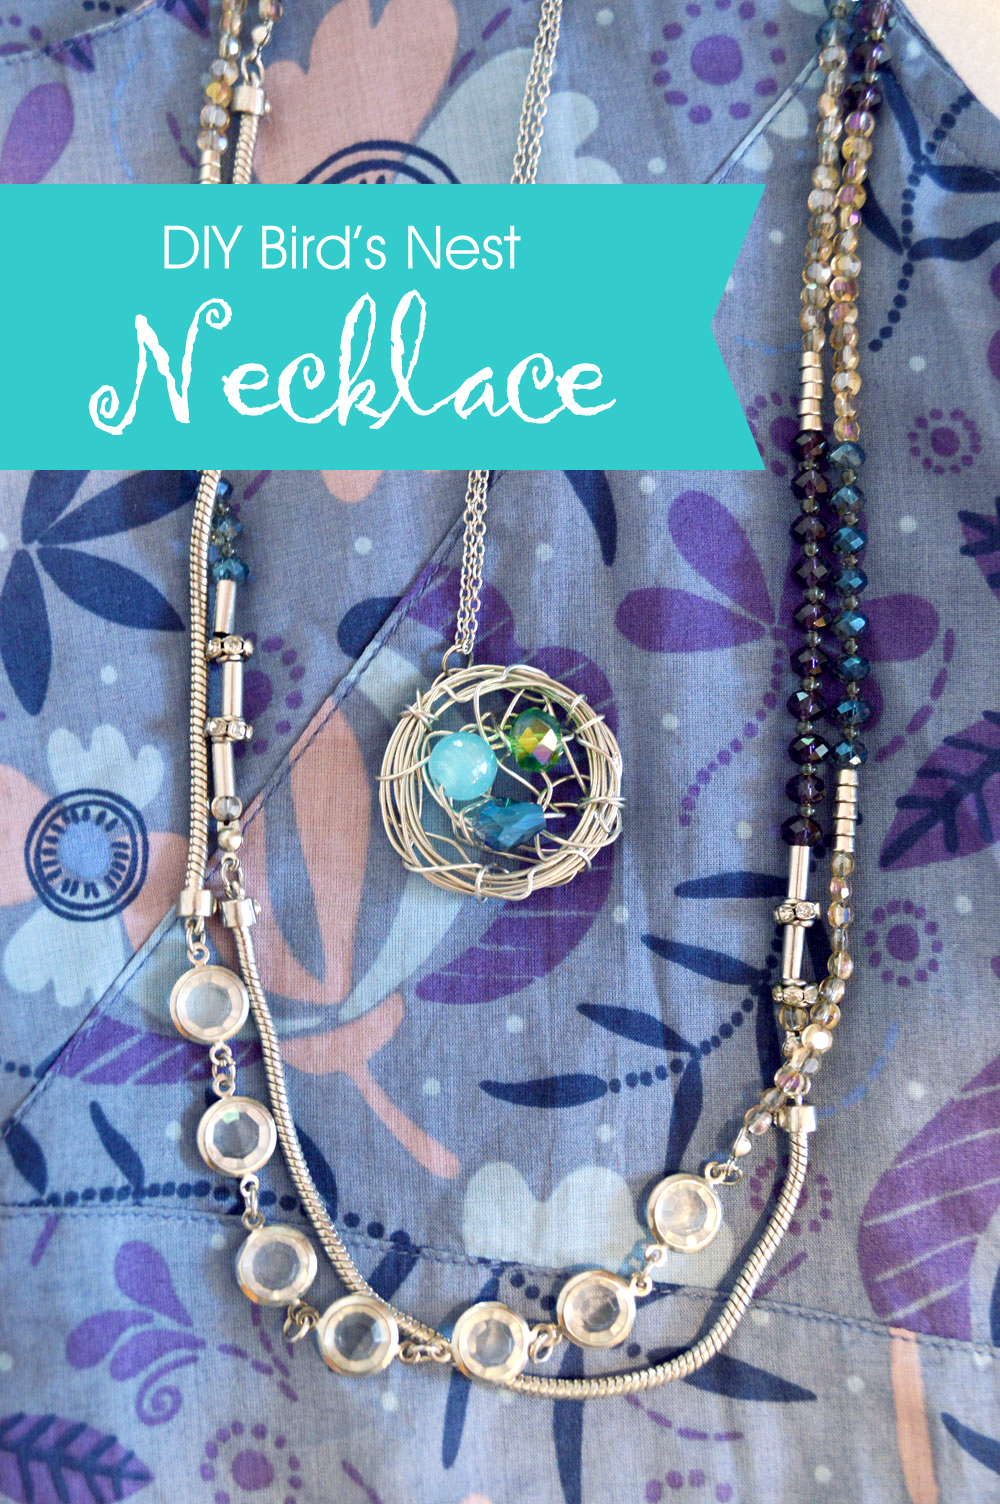 How to make a beautiful customized bird's nest necklace